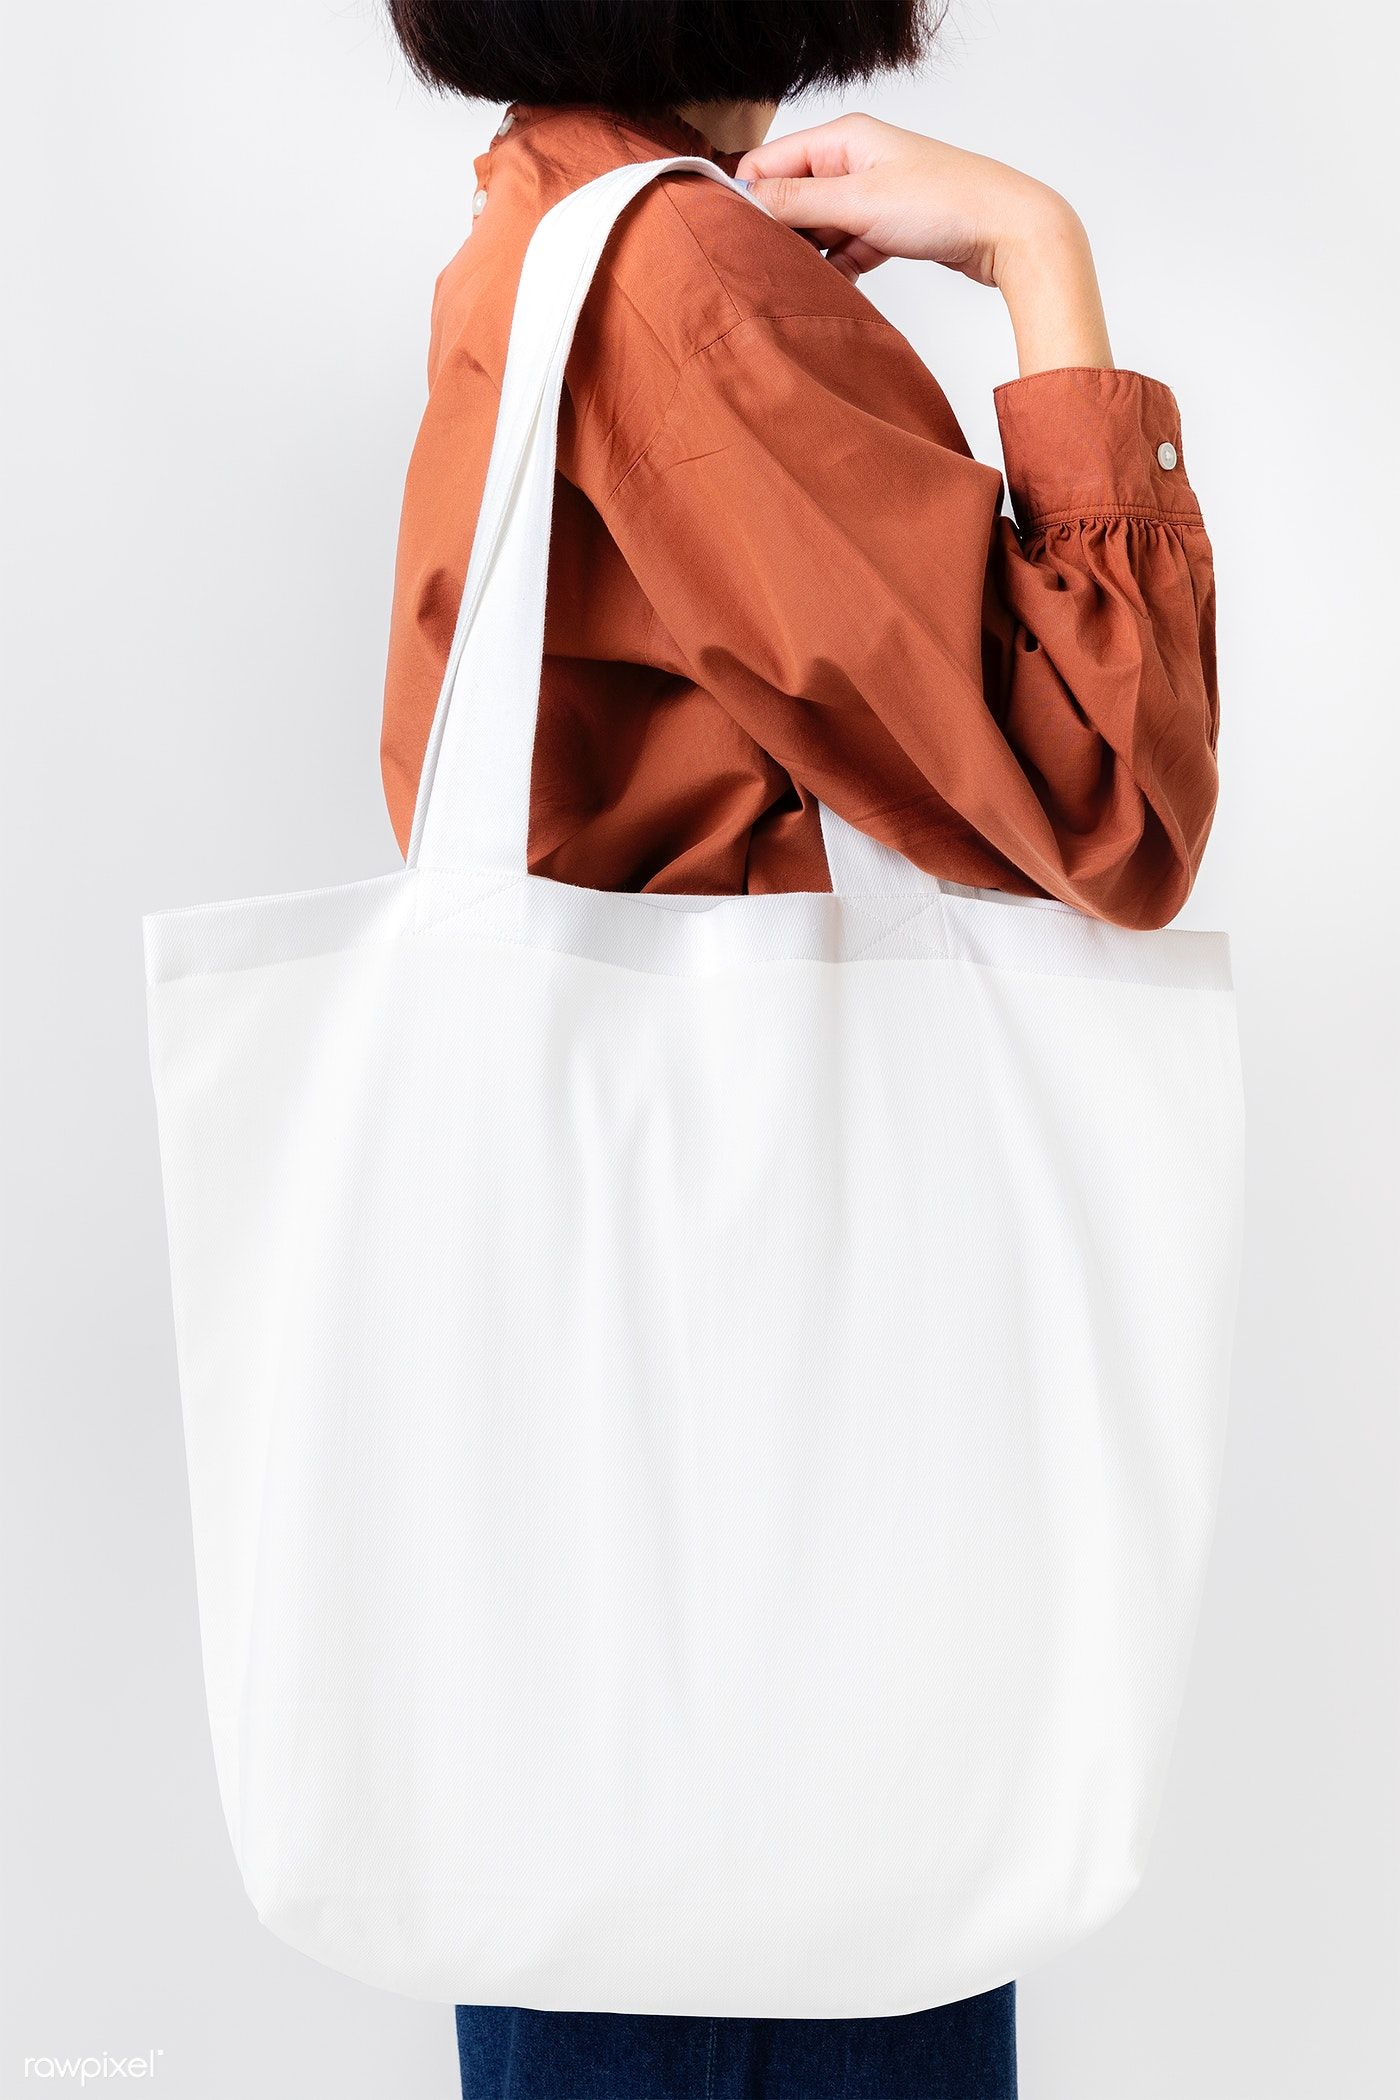 Download Premium Png Of Woman With A Tote Bag Transparent Png 2291613 Yellow Tote Bag Tote Bag Bags